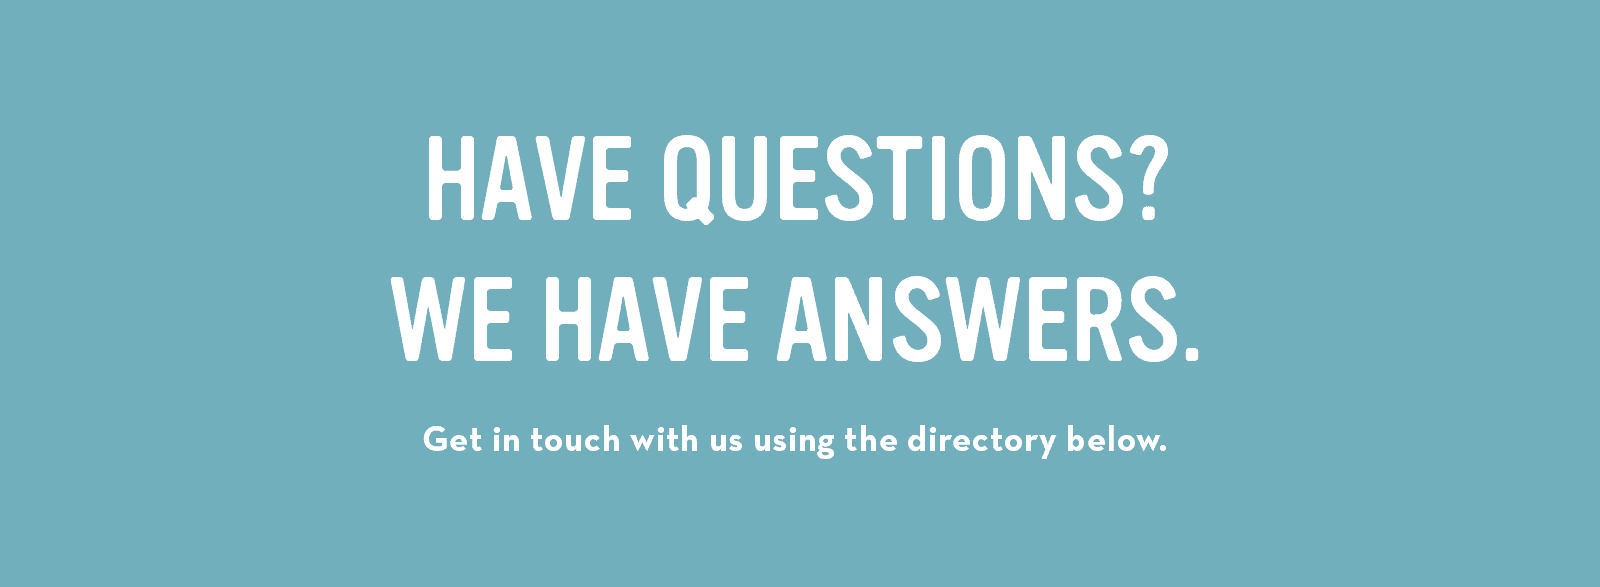 Have questions? We have answers. Get in touch with us using the directory below.